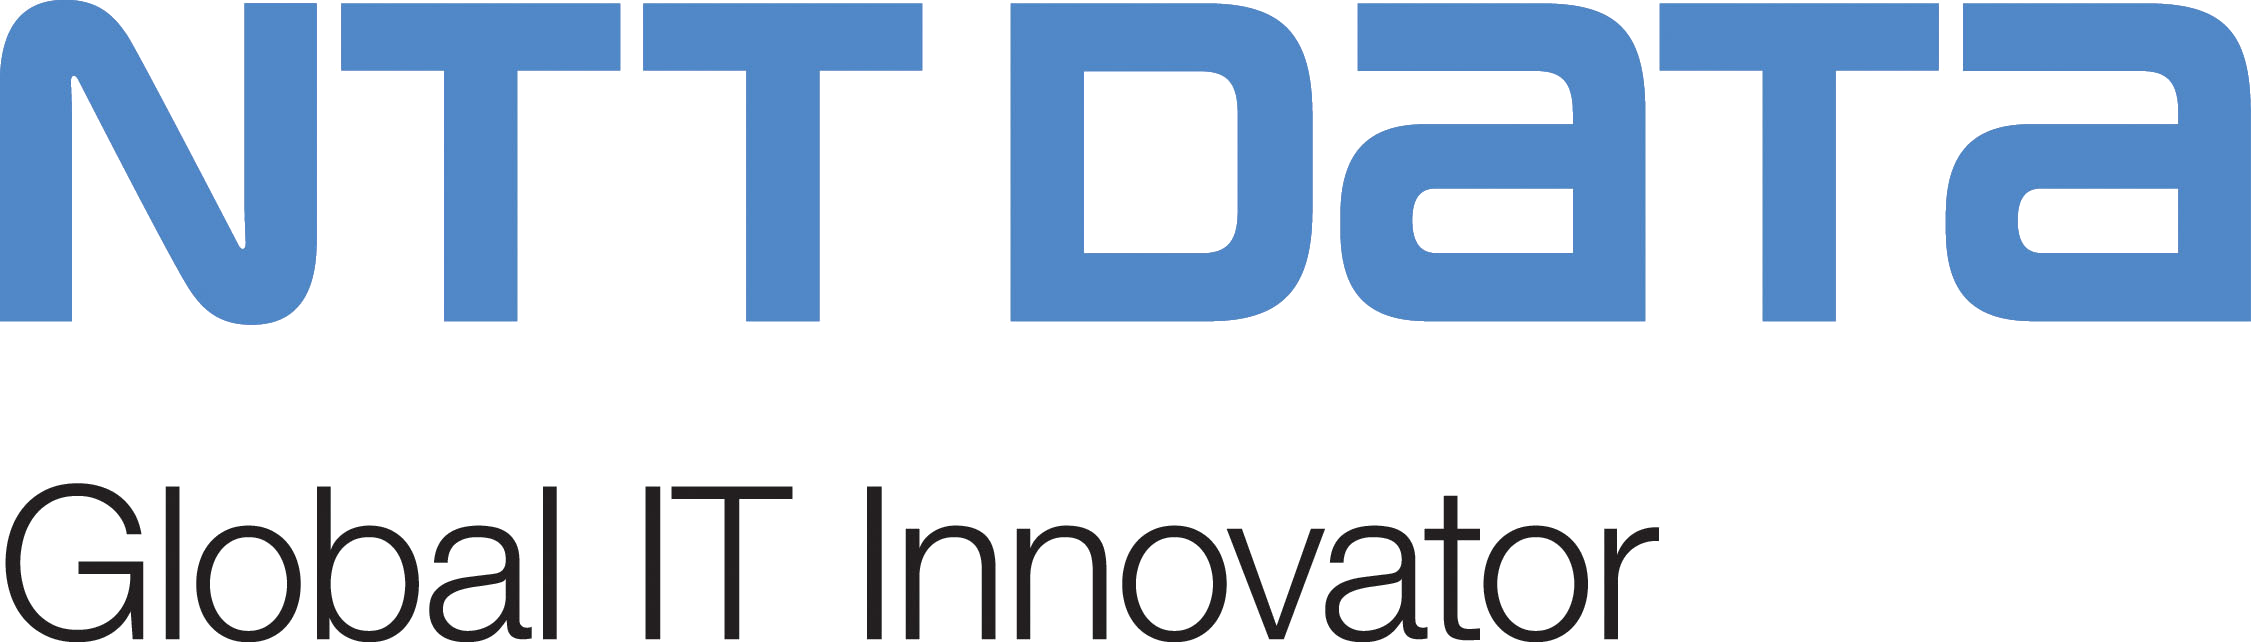 NTT-DATA-Logo-incl-Global-IT-Innovator-610x174